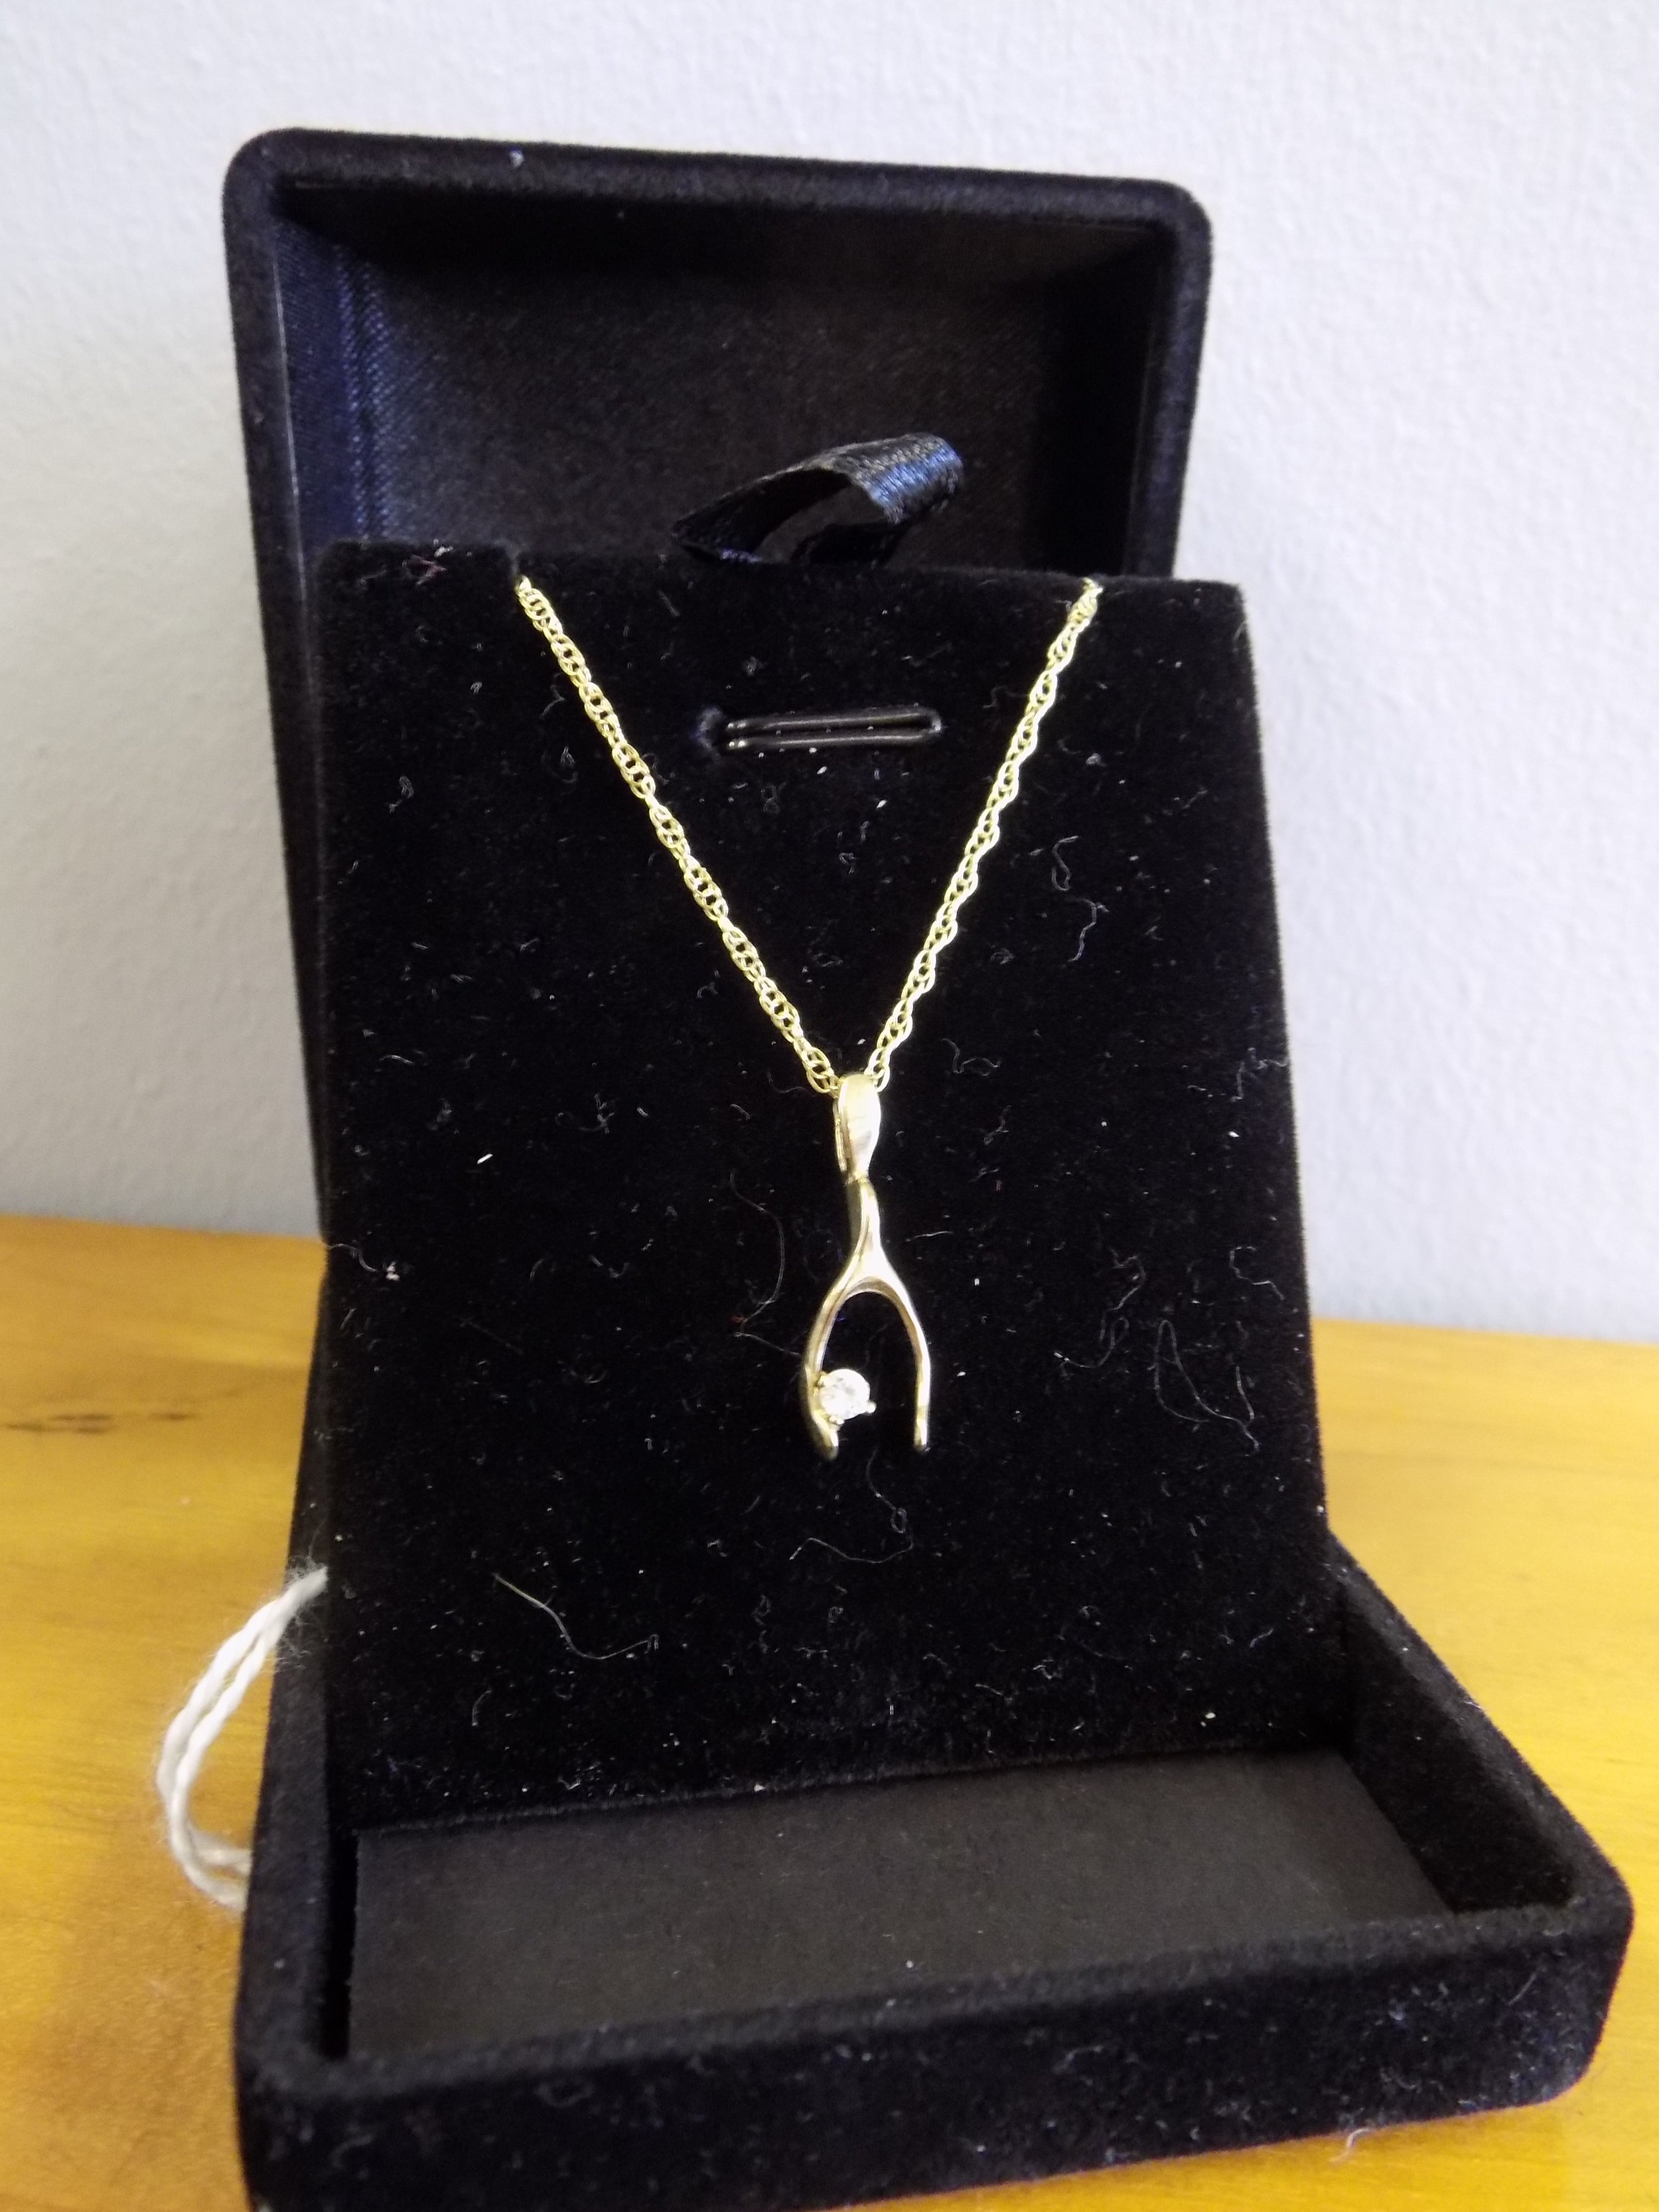 9ct gold and diamond wishbone necklace £125.00